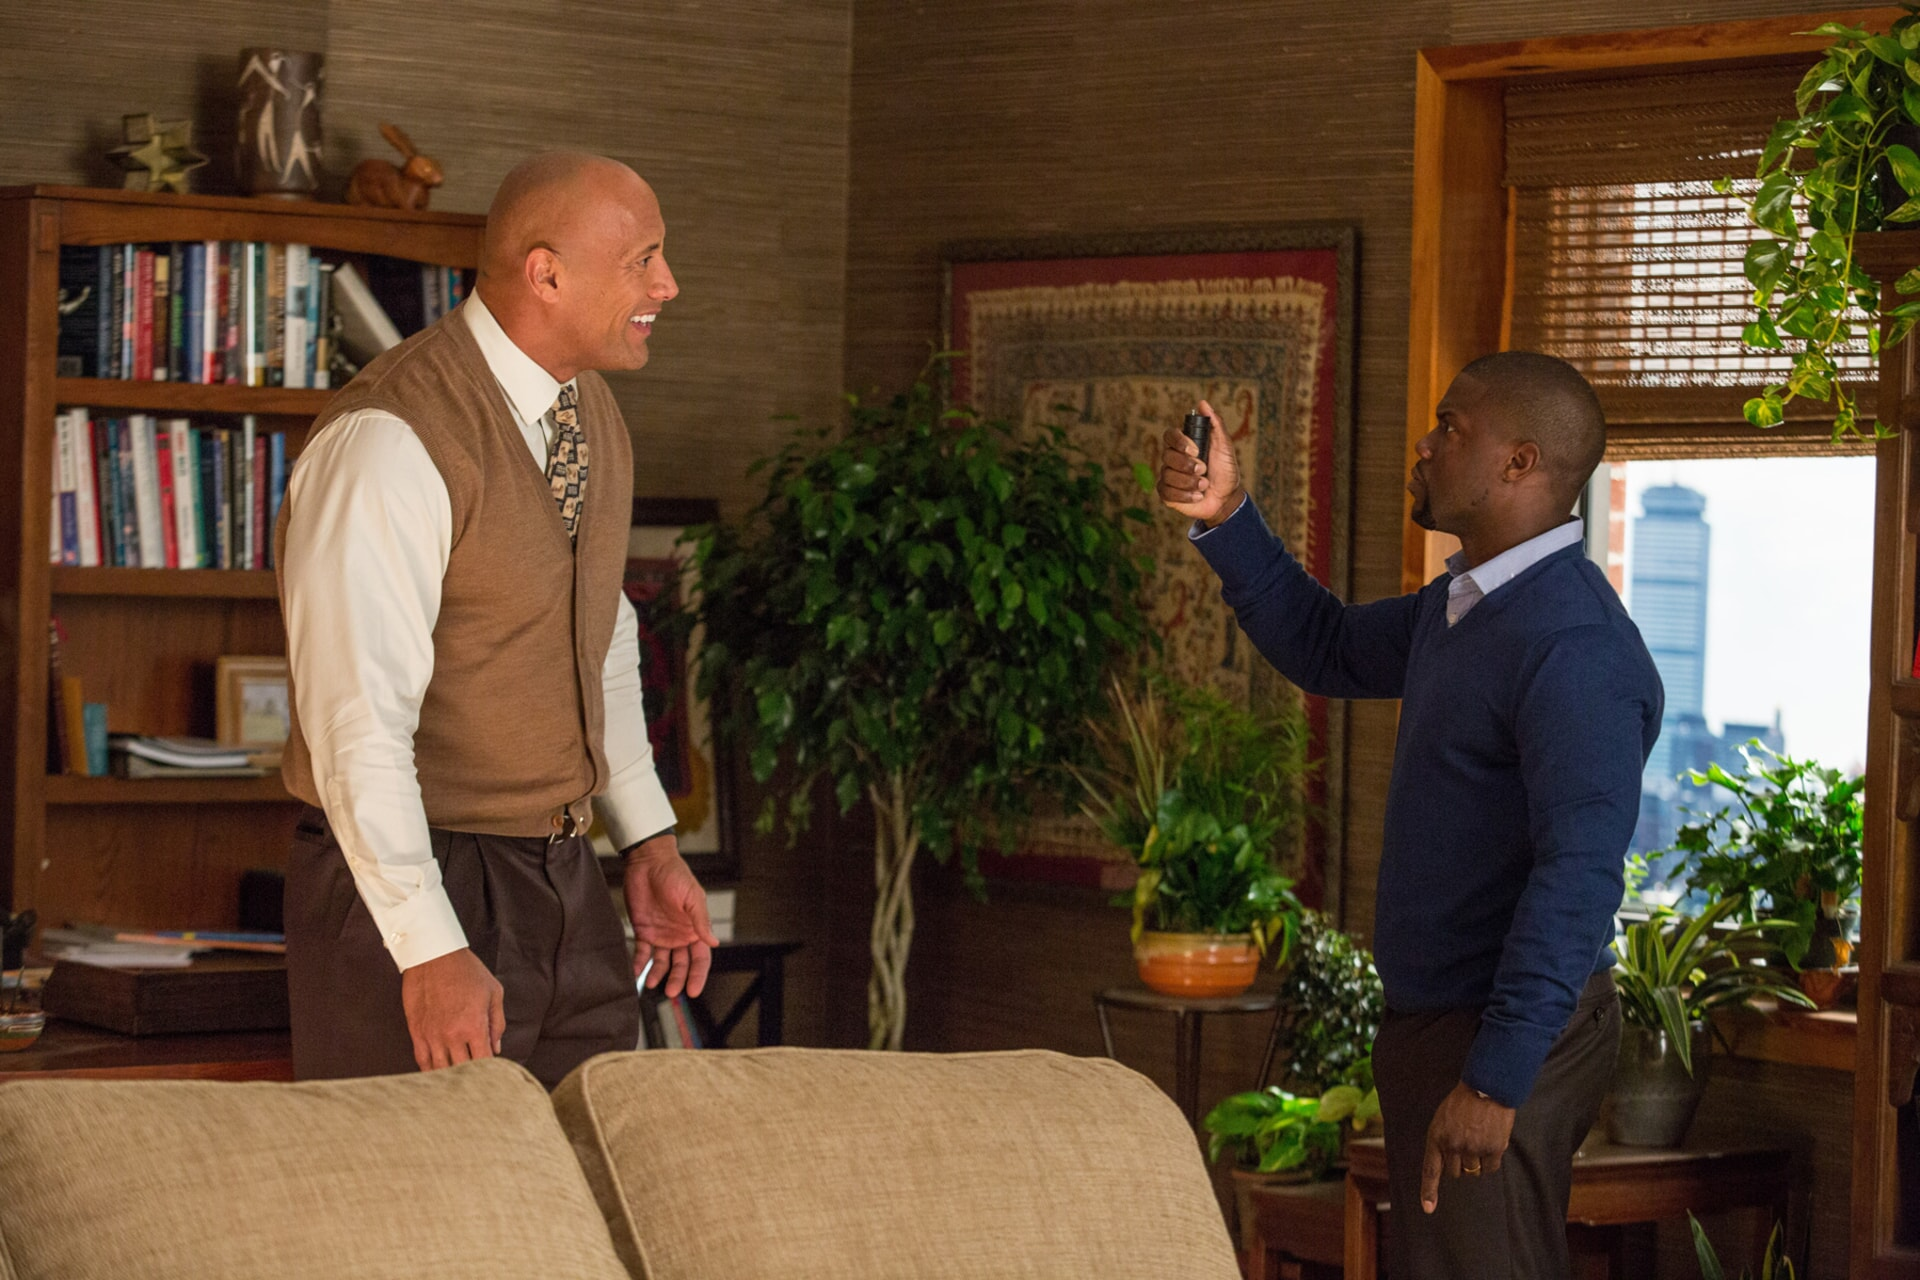 DWAYNE JOHNSON as Bob and KEVIN HART as Calvin in an office